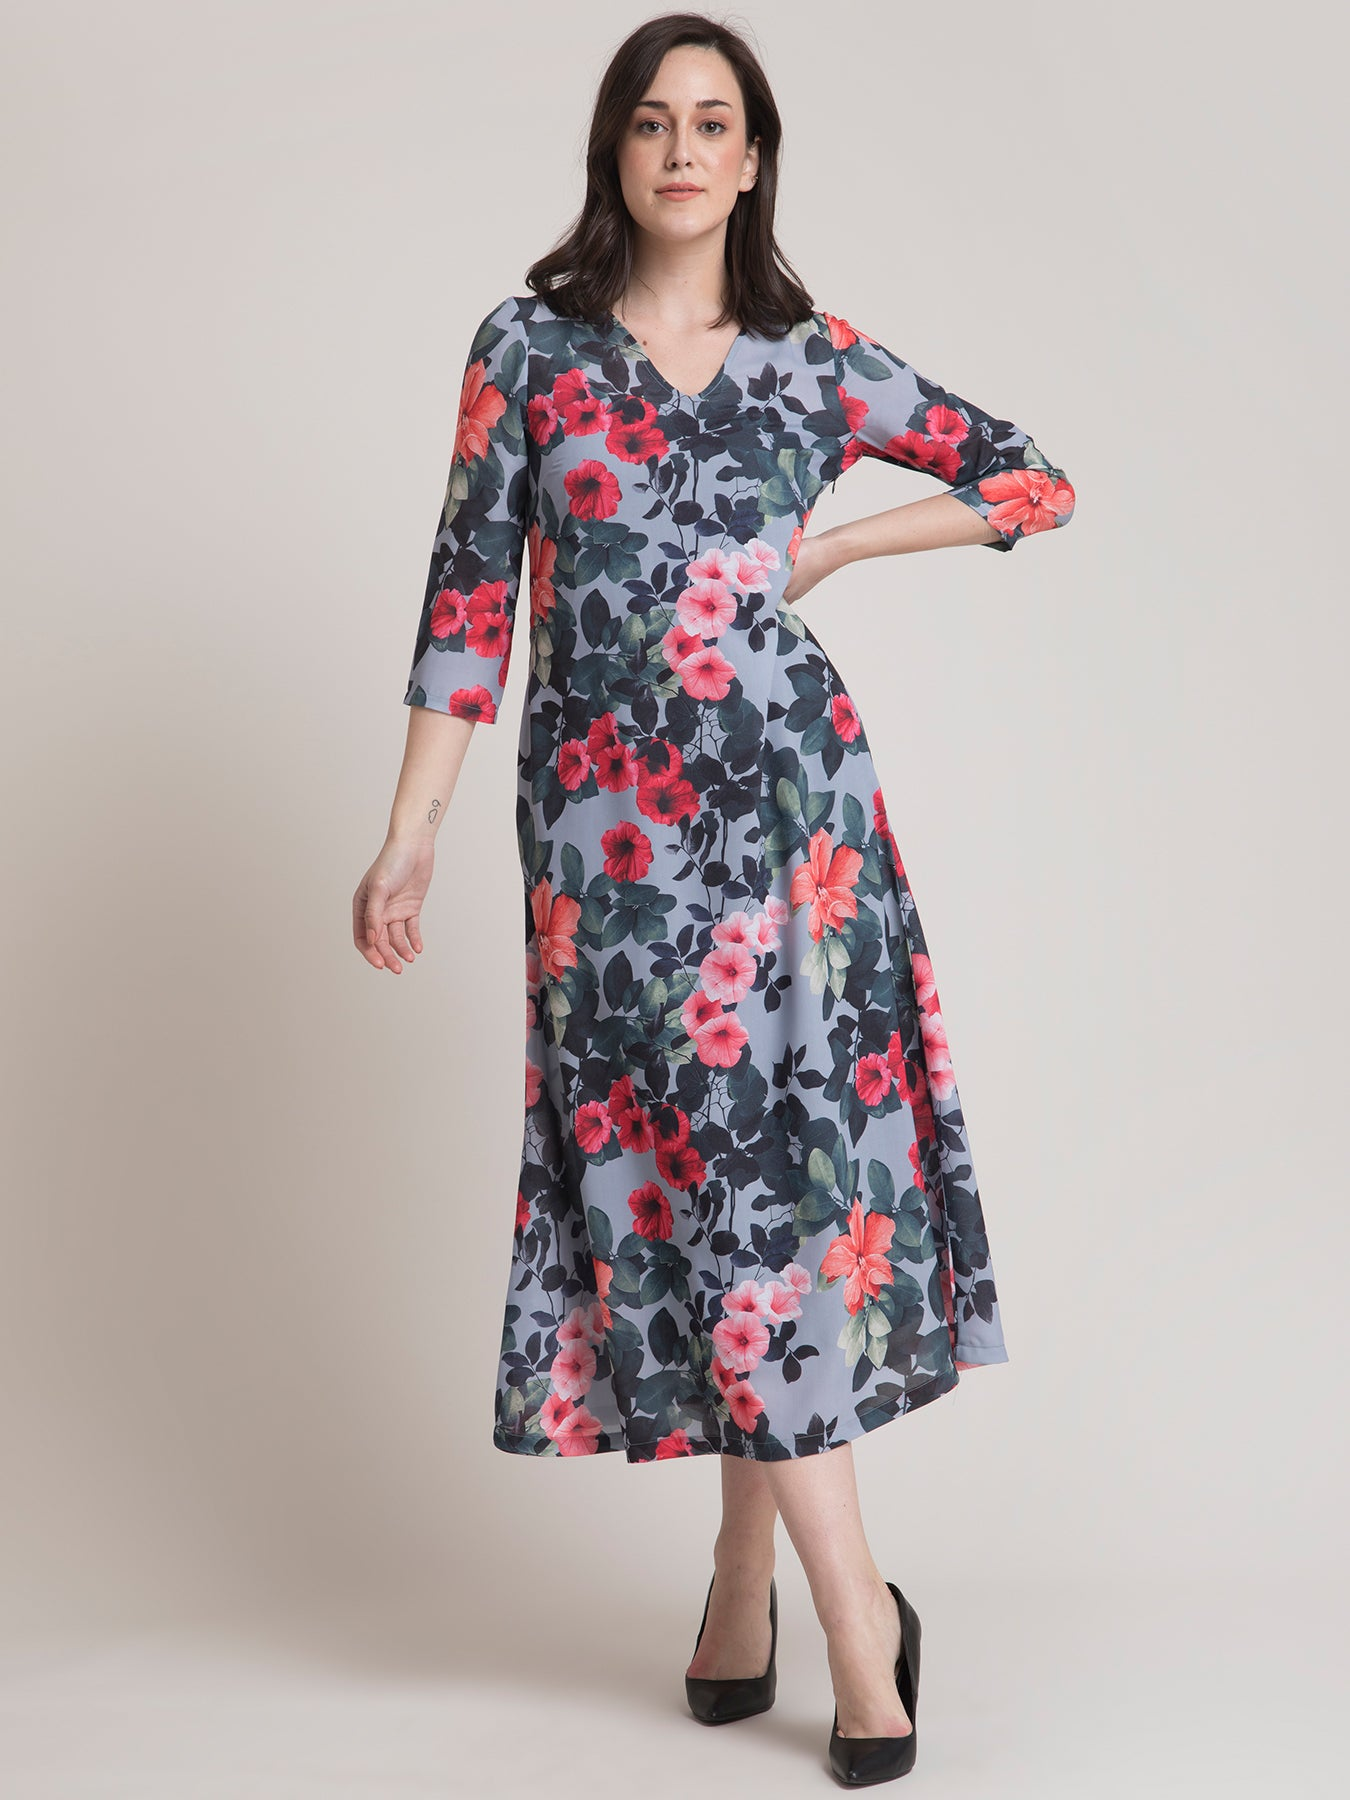 V Neck Floral A Line Dress - Grey and Red